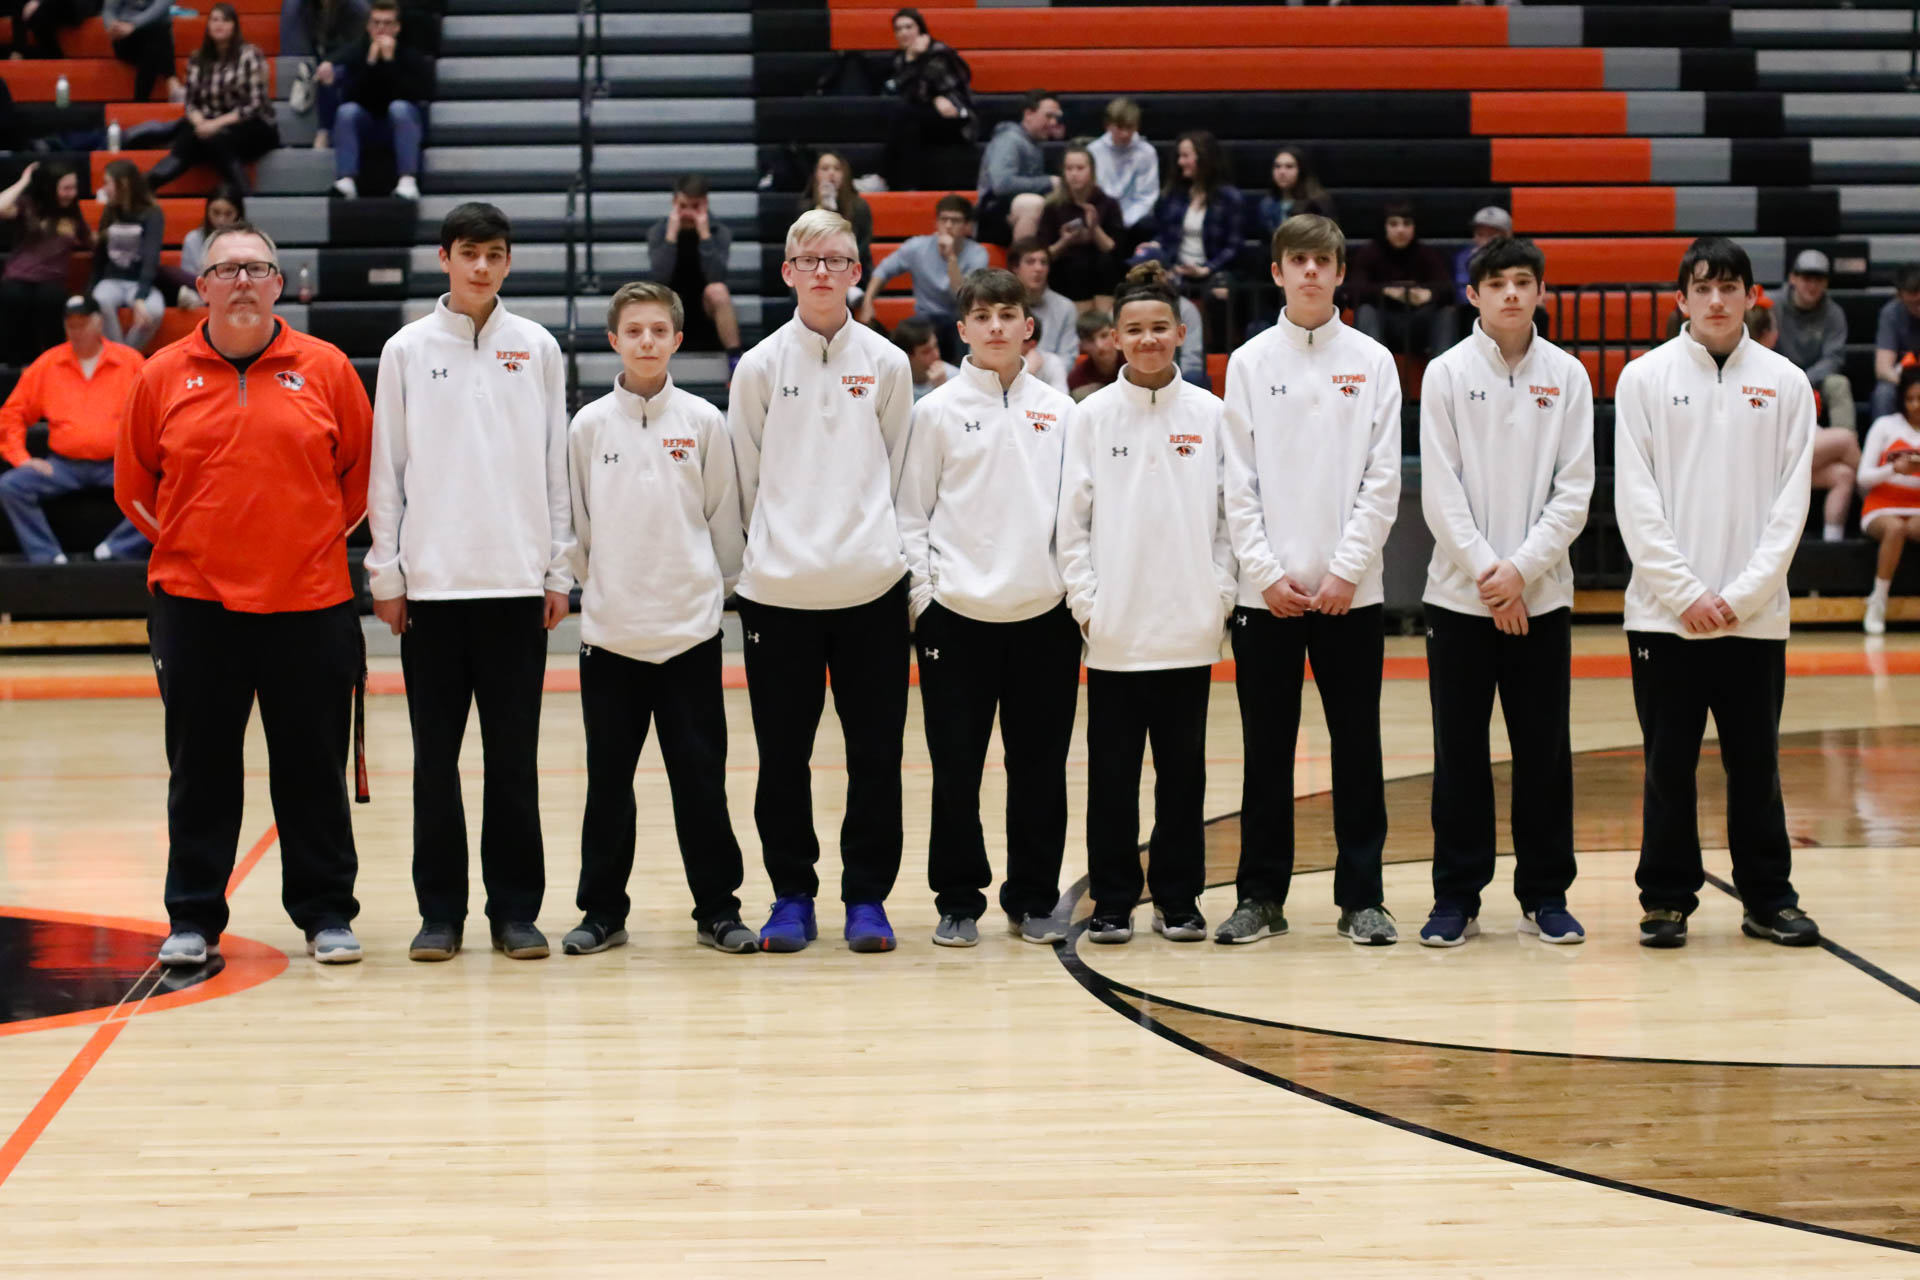 Tigers In Training: Republic Recognizes Middle School Teams